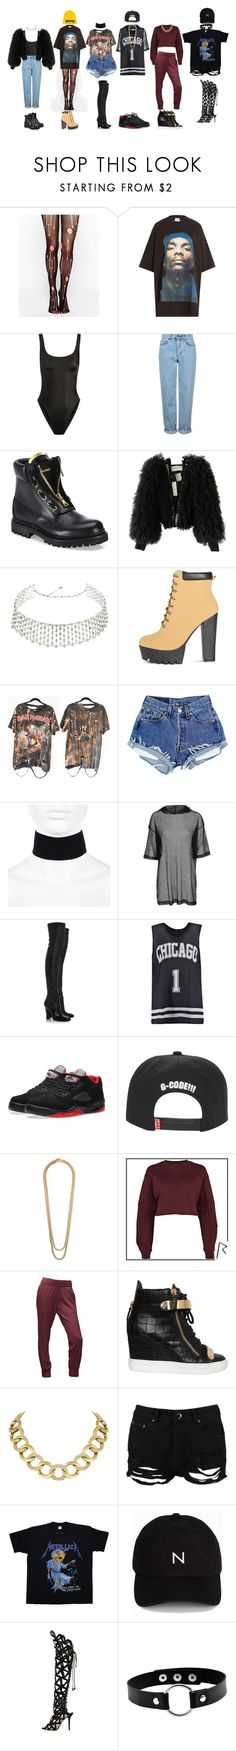 """DC- '휘파람'(WHISTLE)"" by yonce4park ❤ liked on Polyvore featuring Leg Avenue, Vetements, Norma Kamali, Topshop, Balmain, Viktor & Rolf, H.Stern, River Island, Yves Saint Laurent and Boohoo"